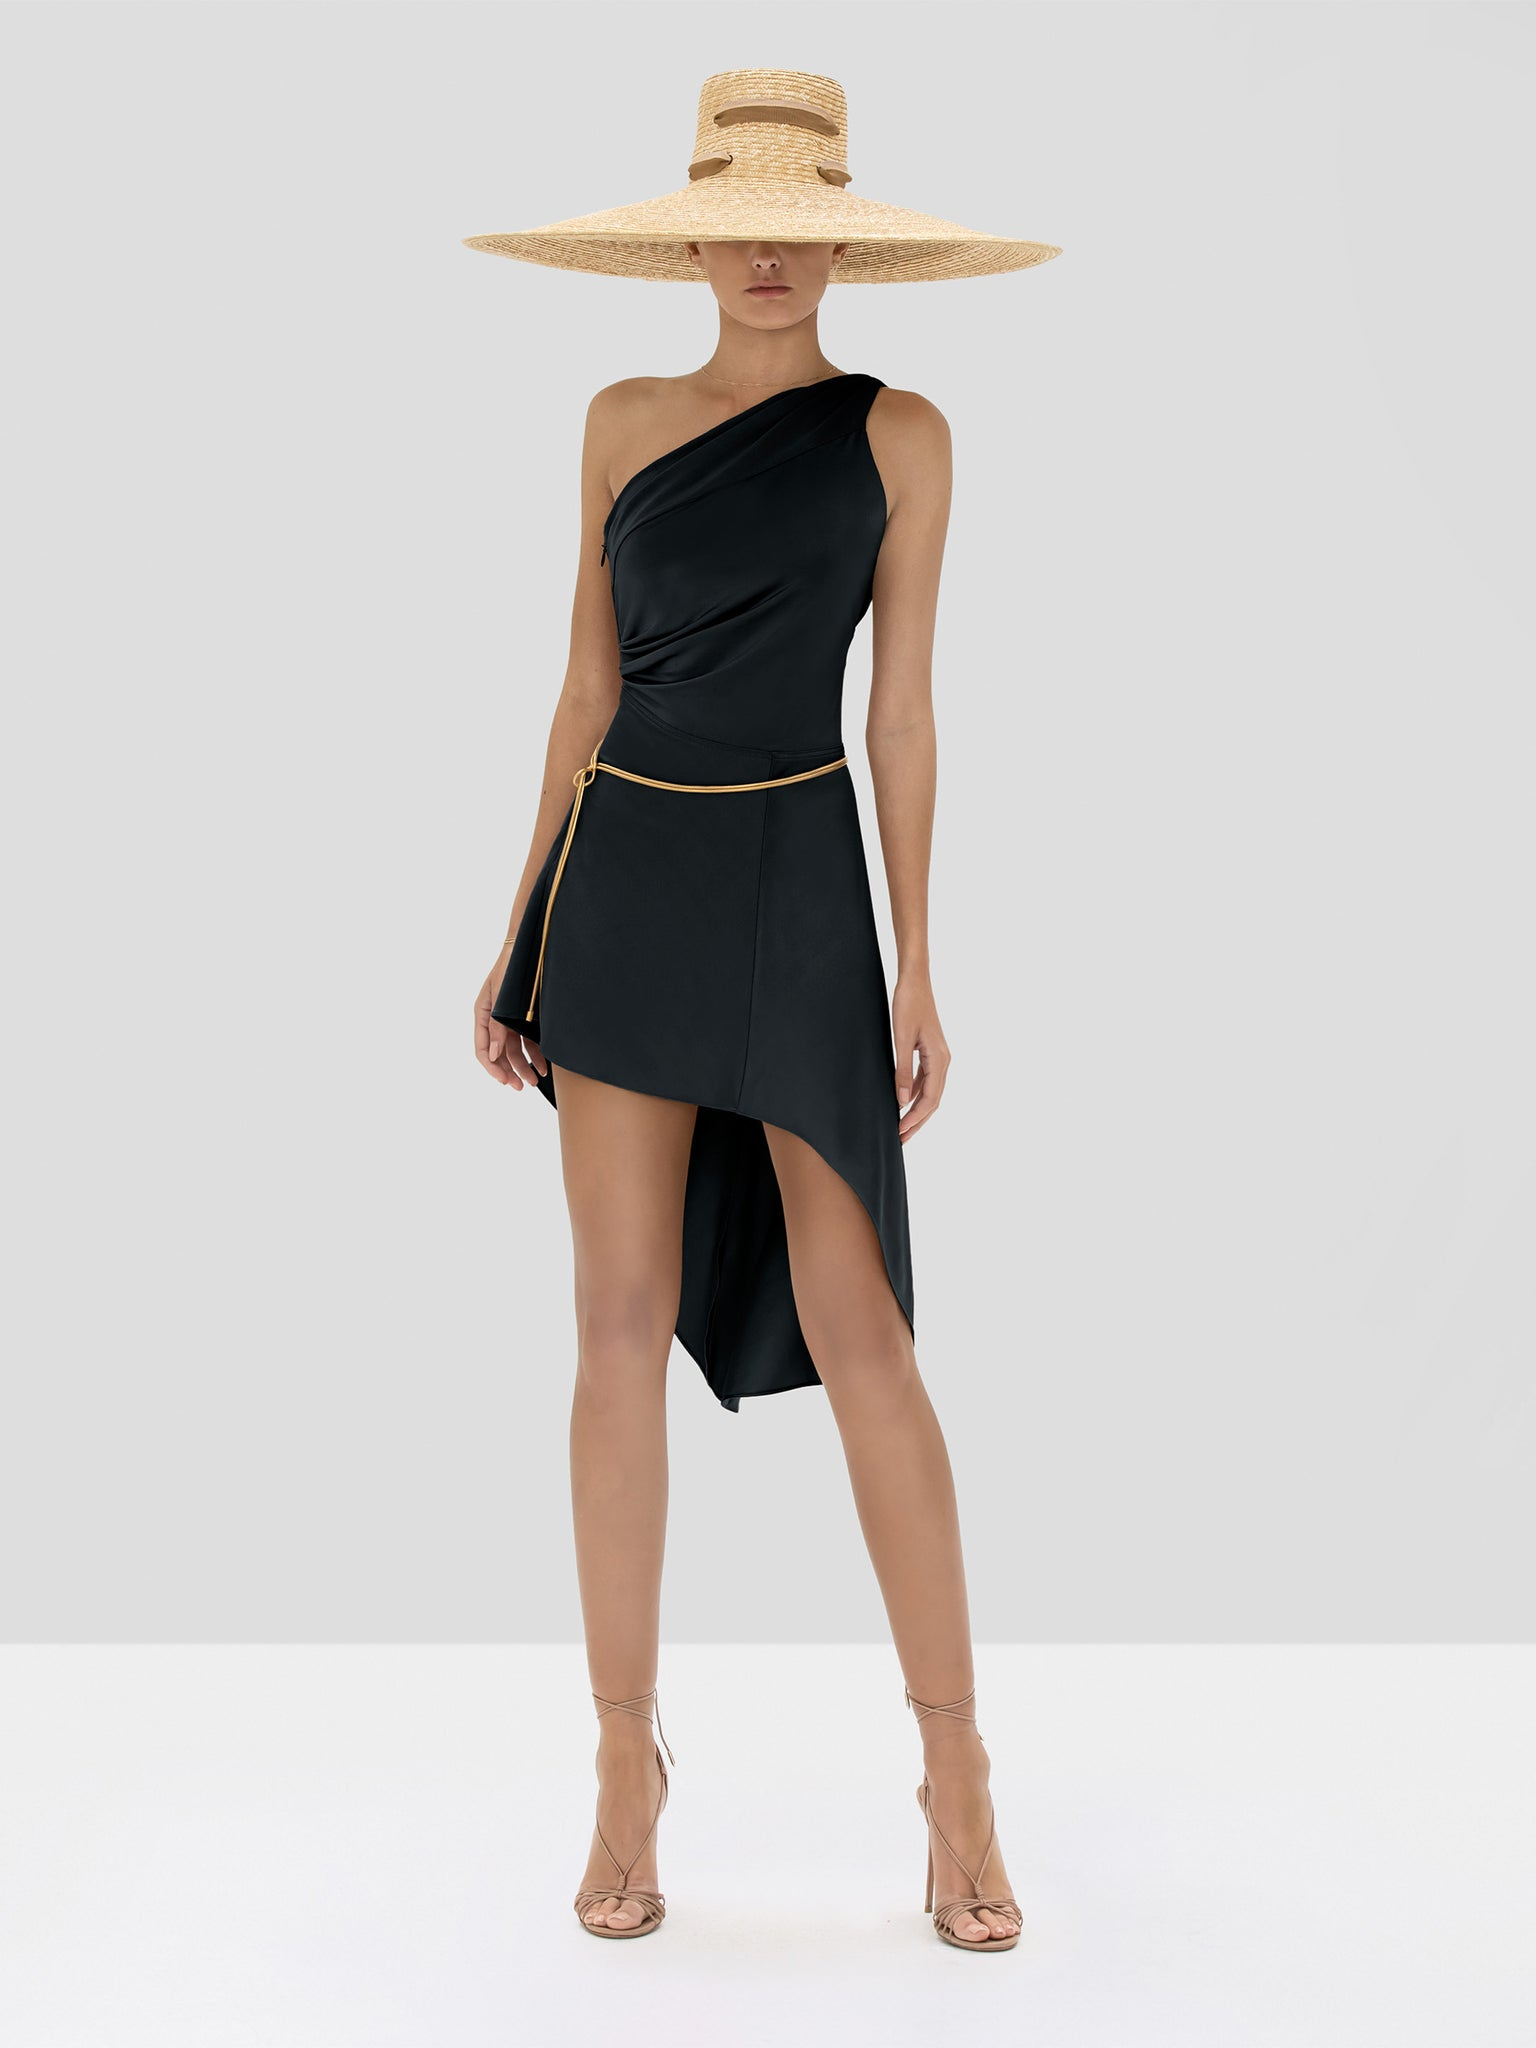 Alexis Mellie Dress in Black from the Spring Summer 2020 Collection